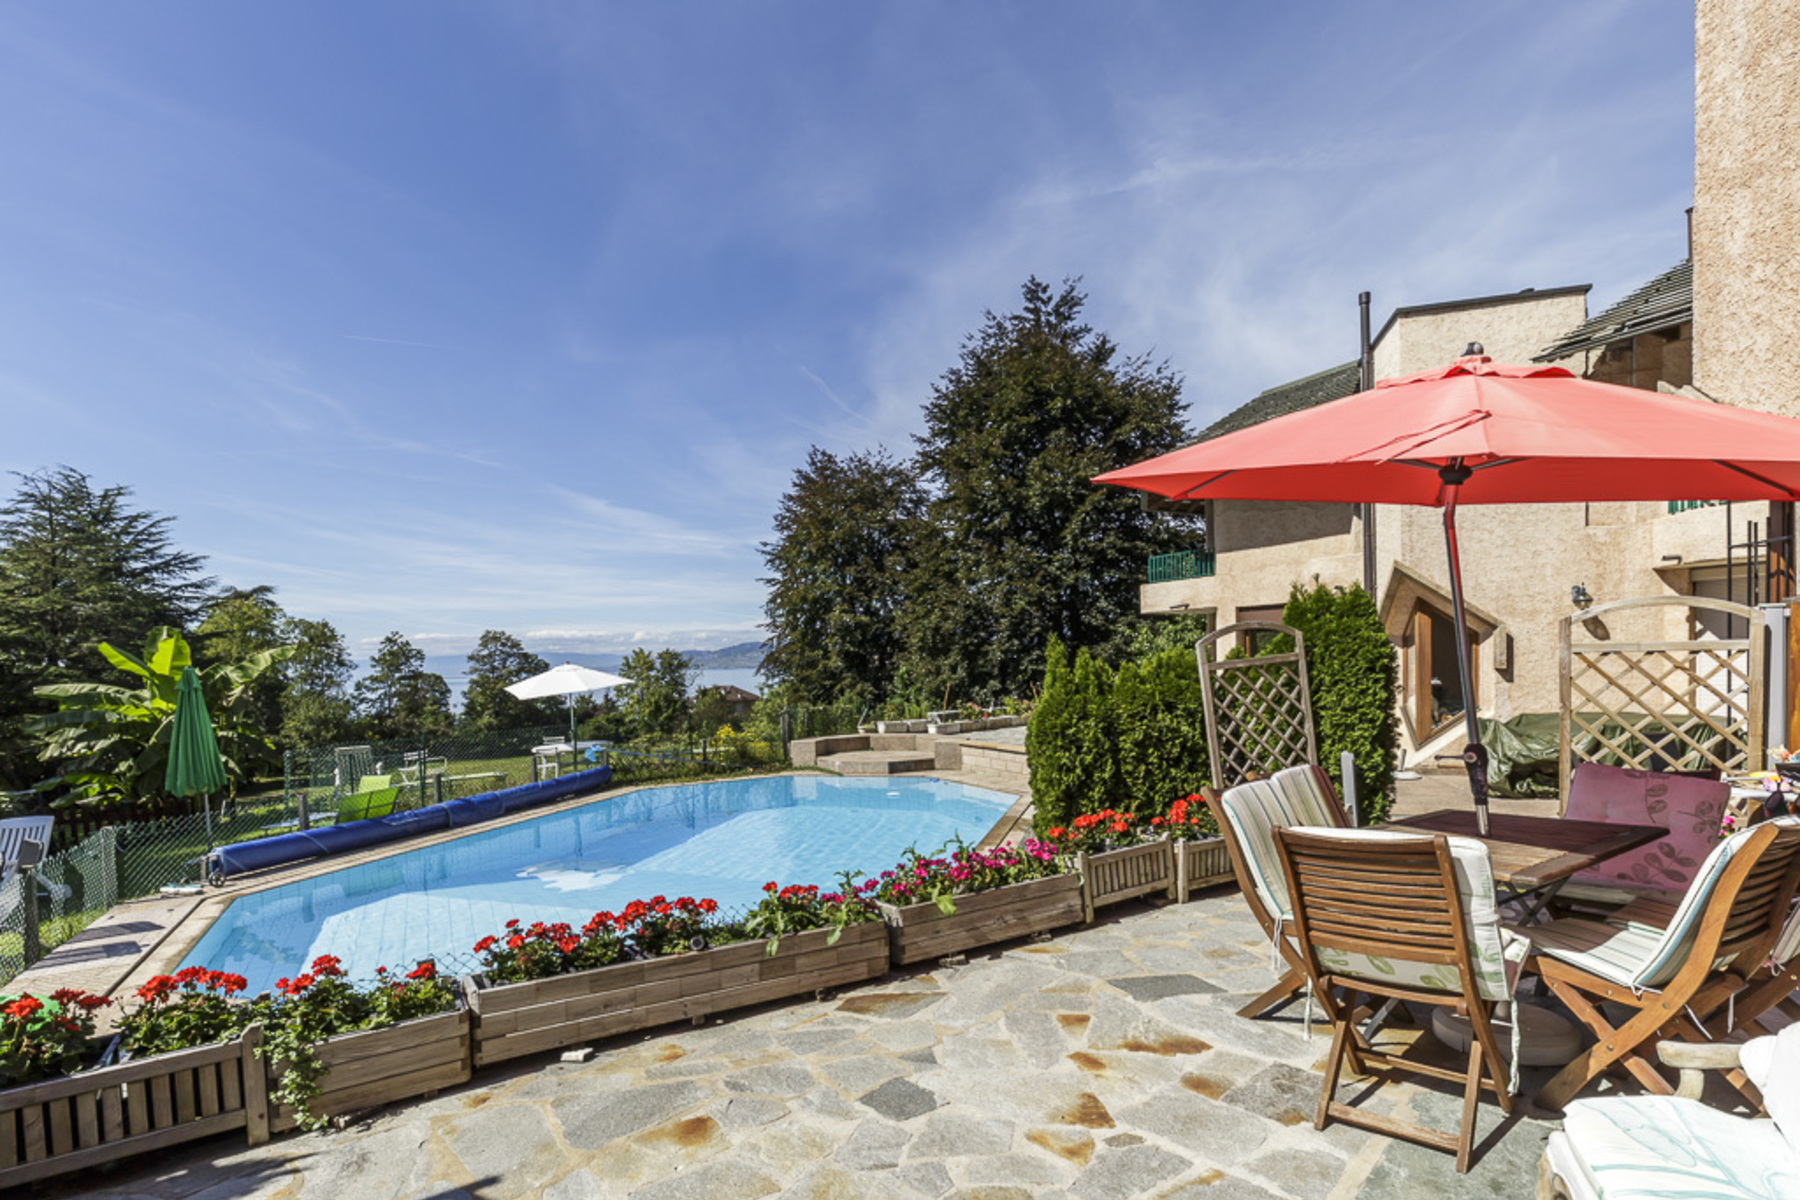 Vivienda unifamiliar por un Venta en Terraced house with magnificent views over the lake and an outdoor swimming pool Villeneuve Villeneuve Vd, Vaud, 1844 Suiza